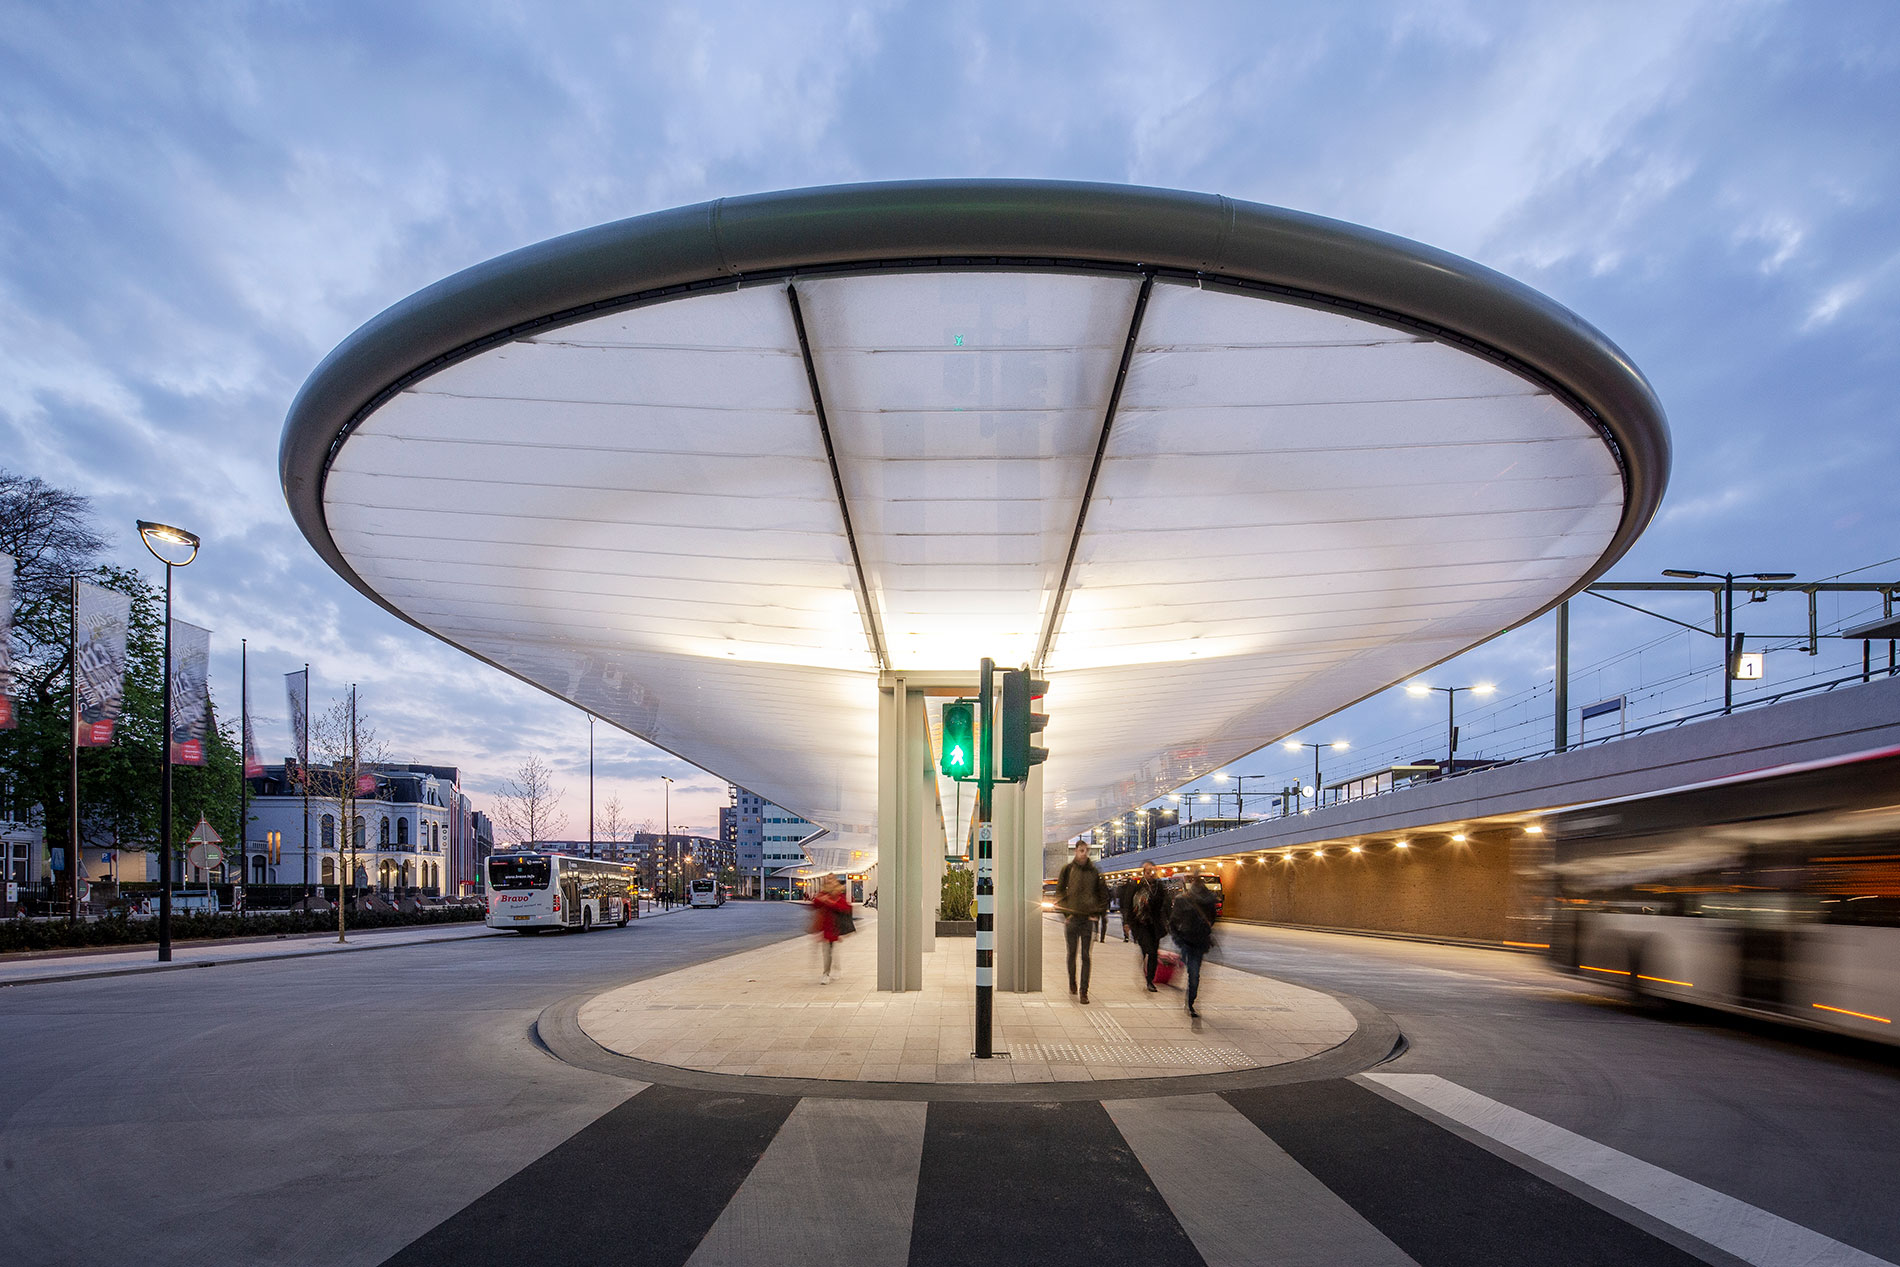 Tilburg Bus Station, The Netherlands